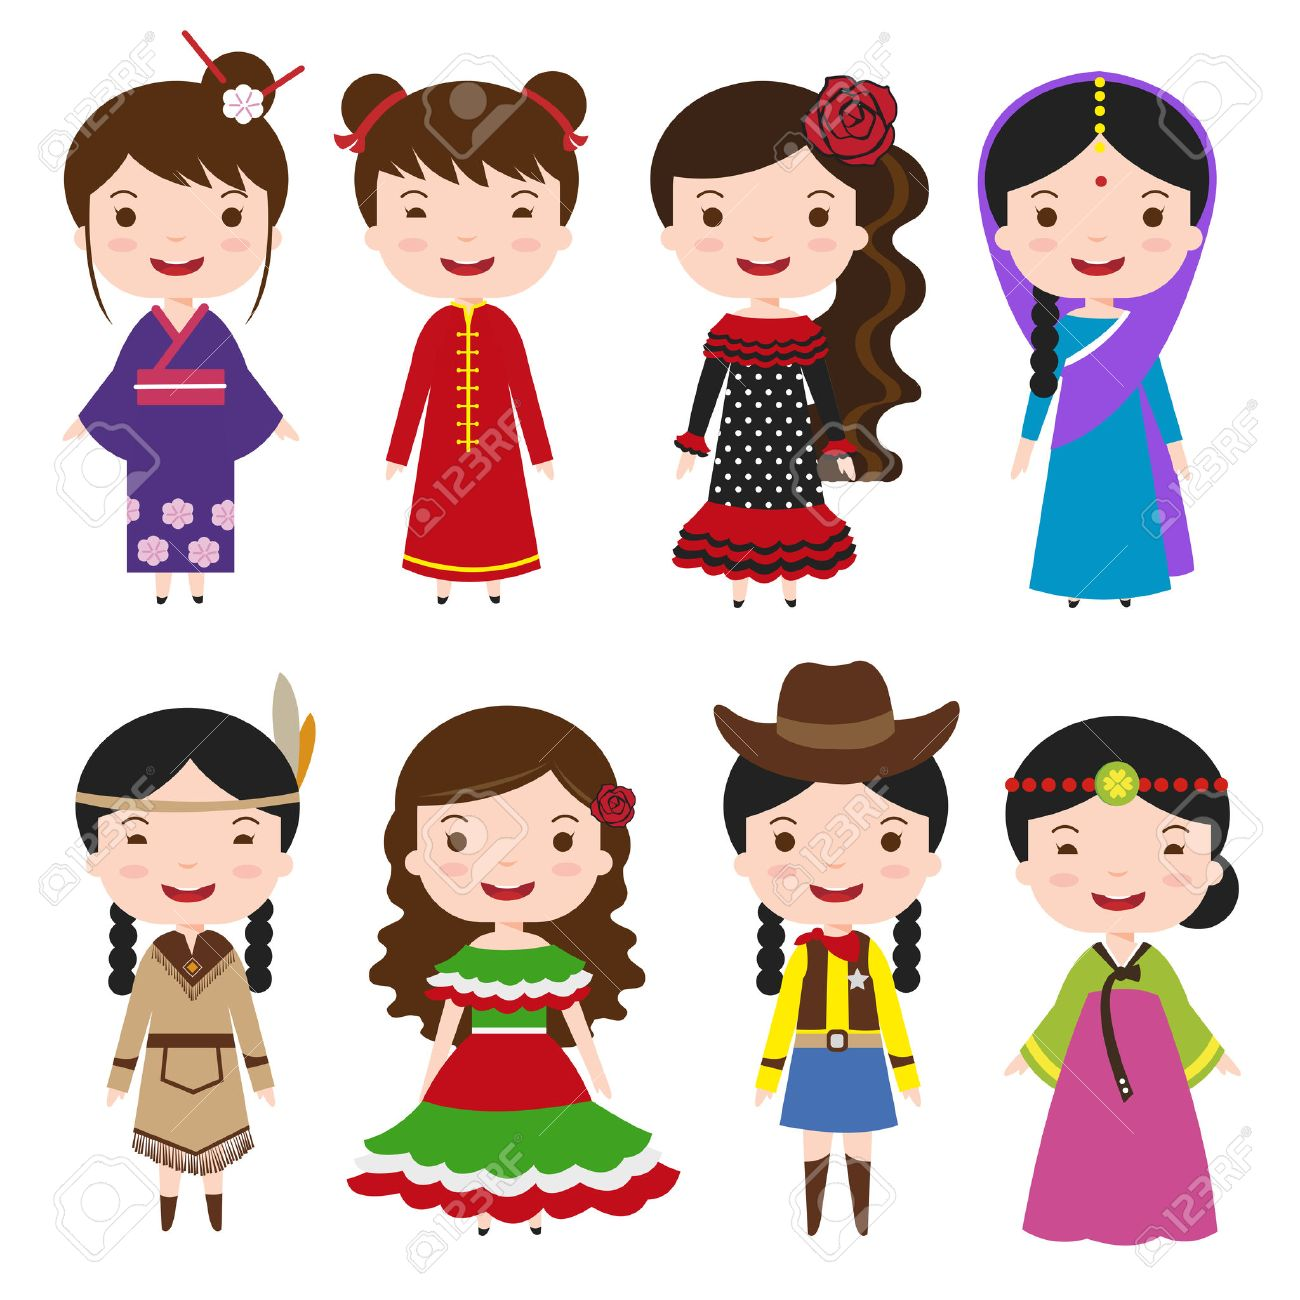 traditional costumes character of the world dress girls in different